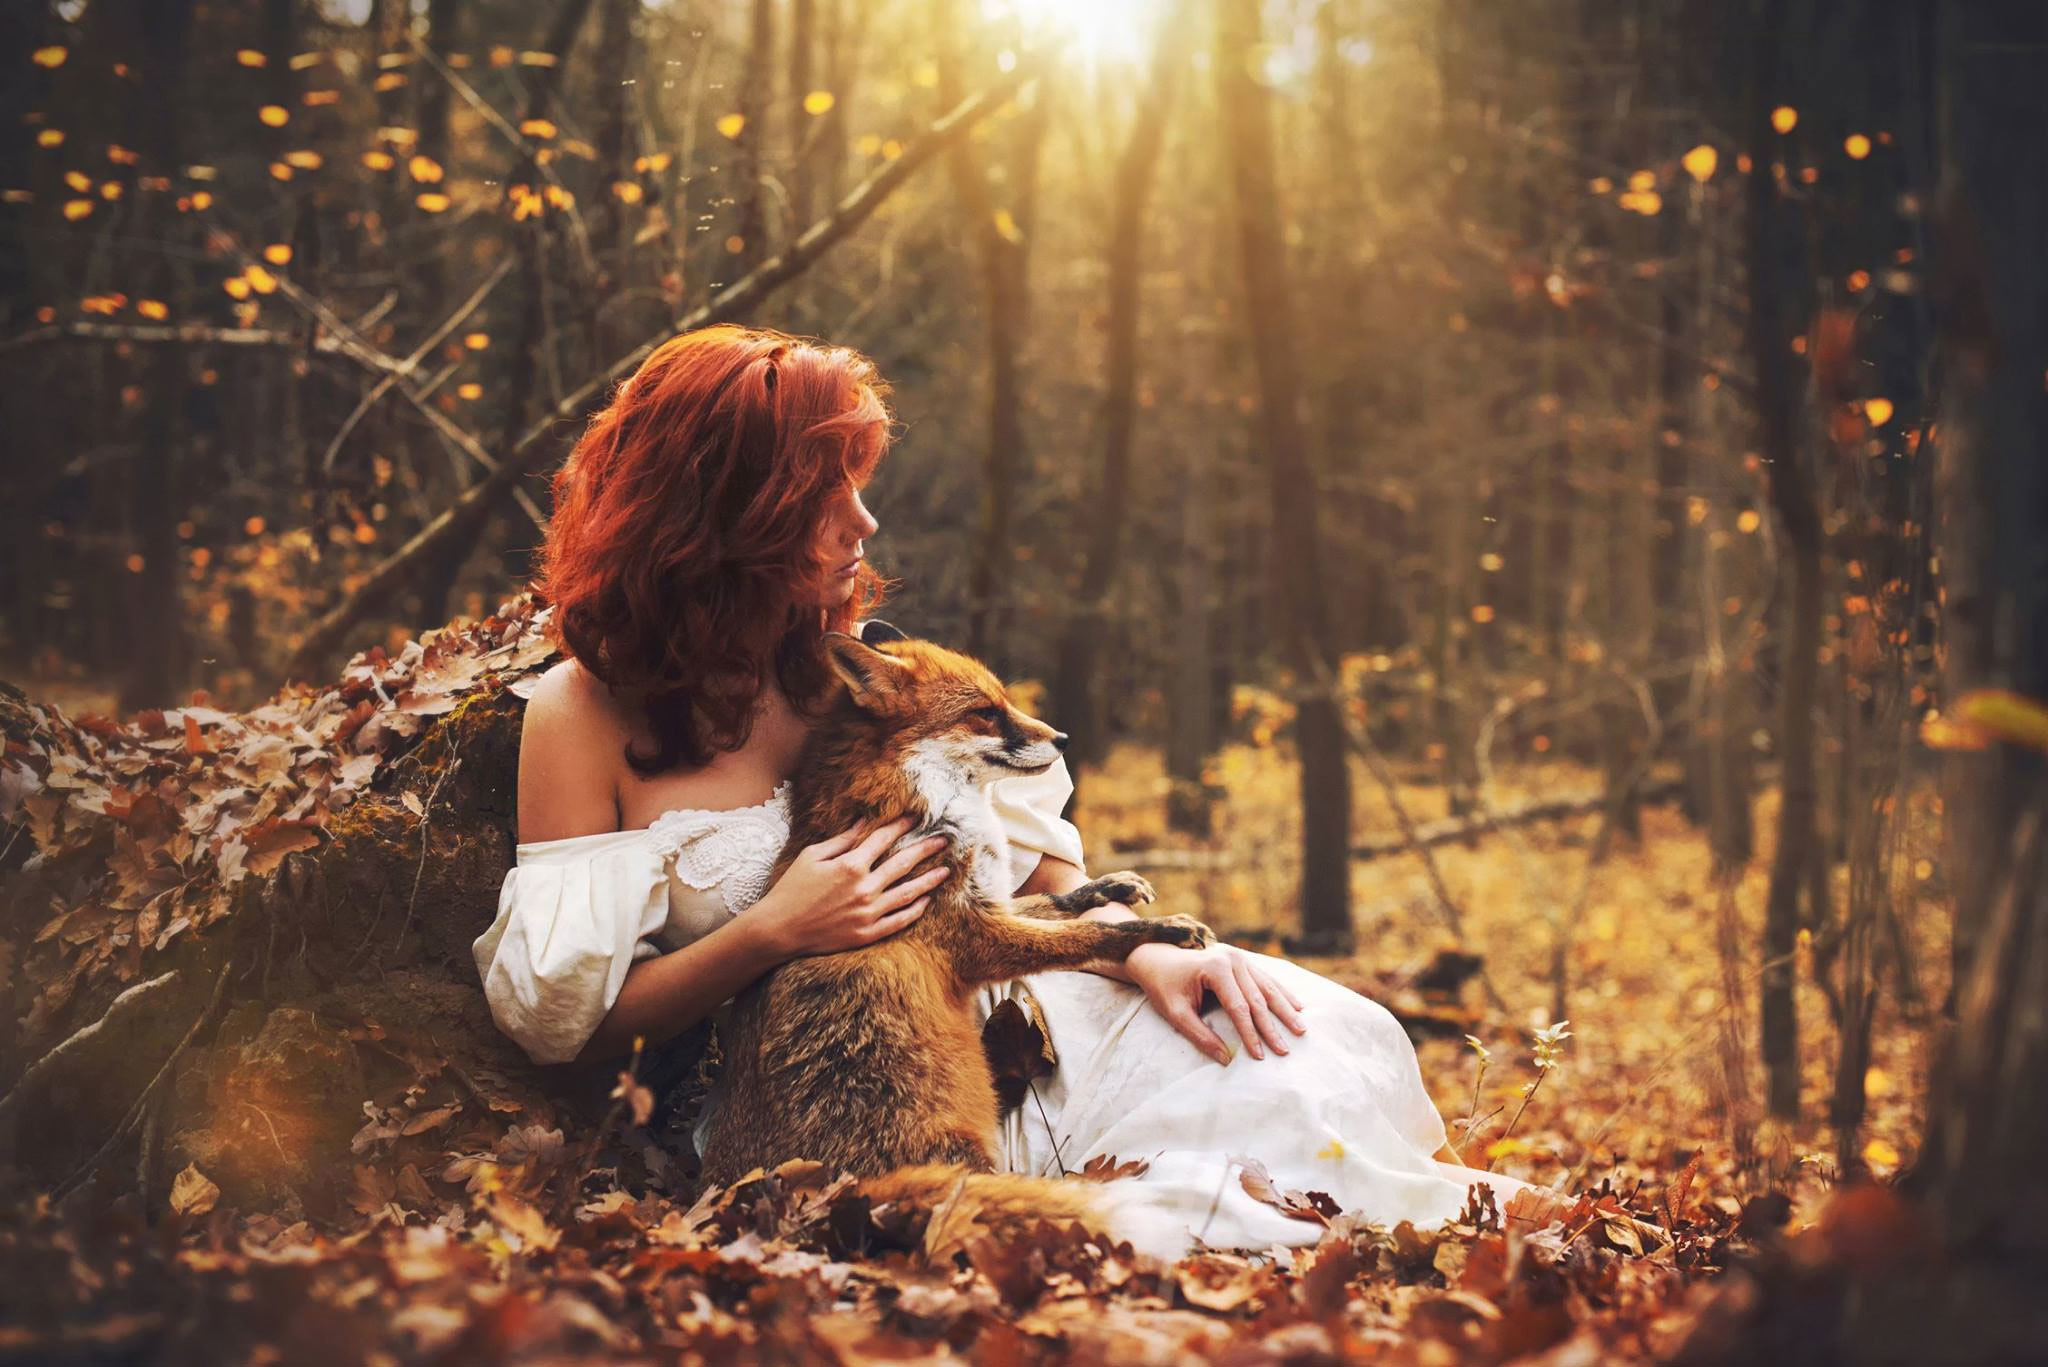 Fall In Love Girl Wallpaper : Girl and A Fox Full HD Wallpaper and Background Image 2048x1367 ID:692532